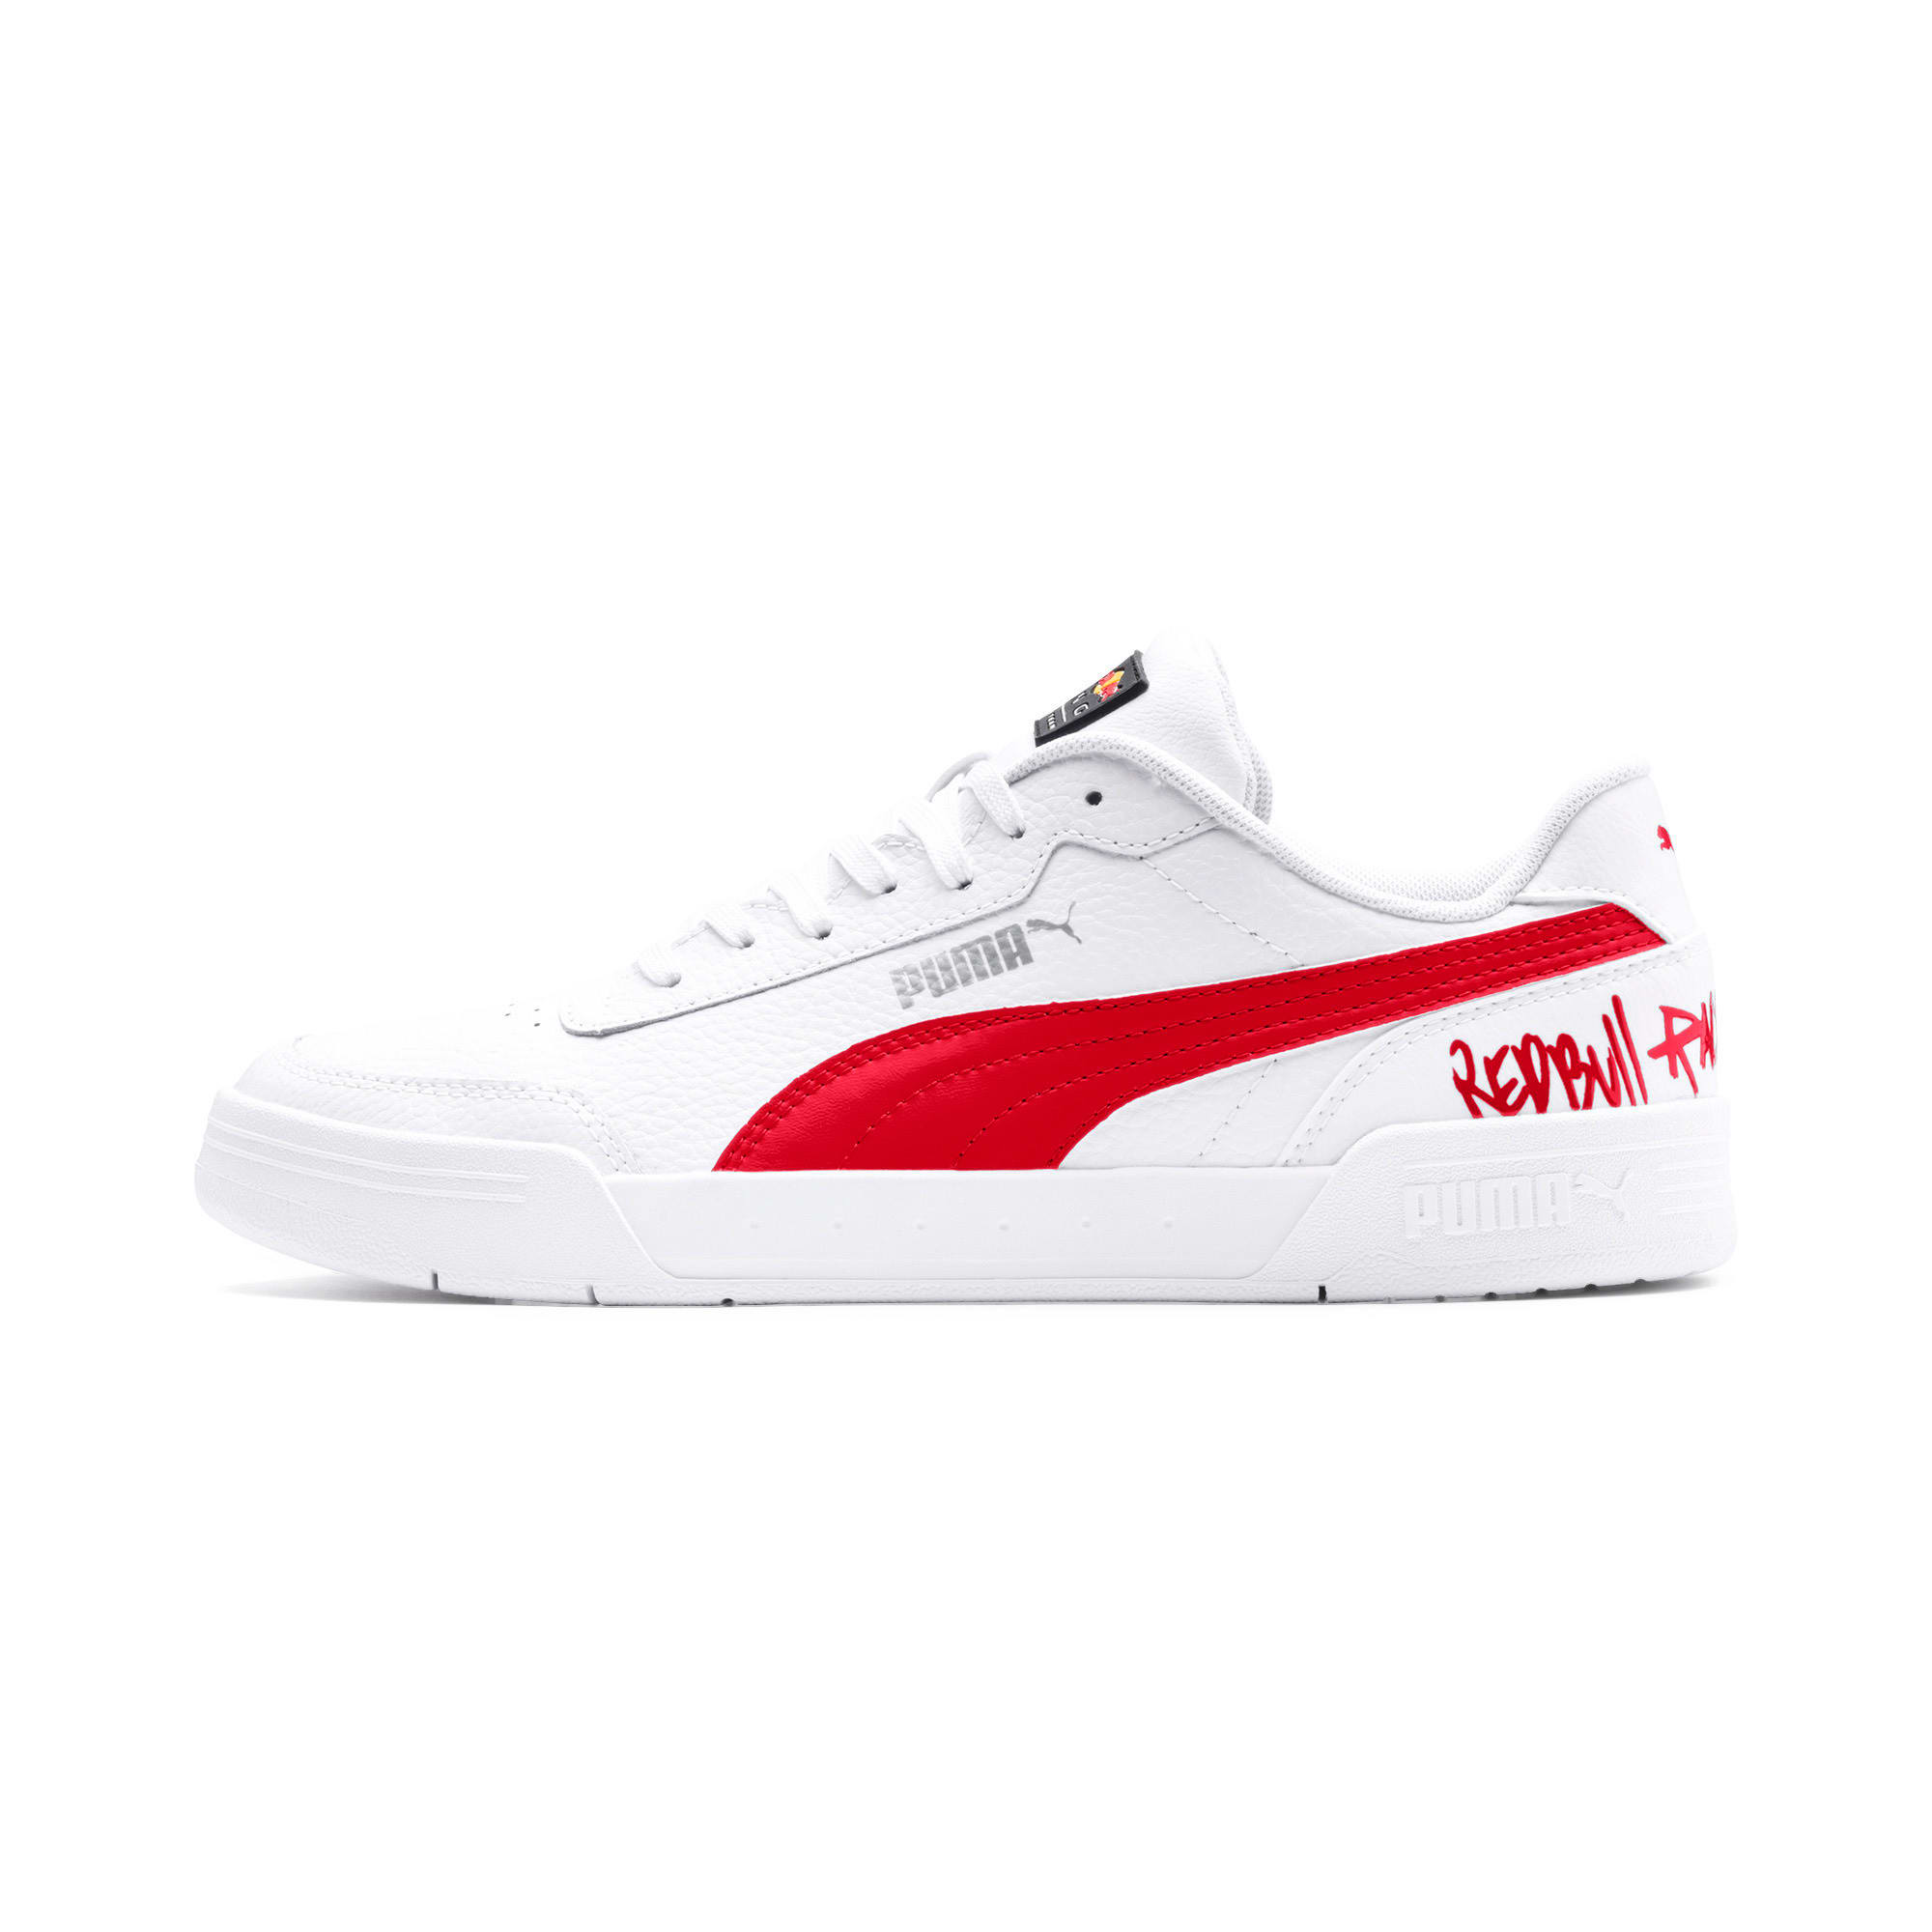 Thumbnail 1 of Red Bull Racing Caracal Trainers, Puma White-Chinese Red-White, medium-IND